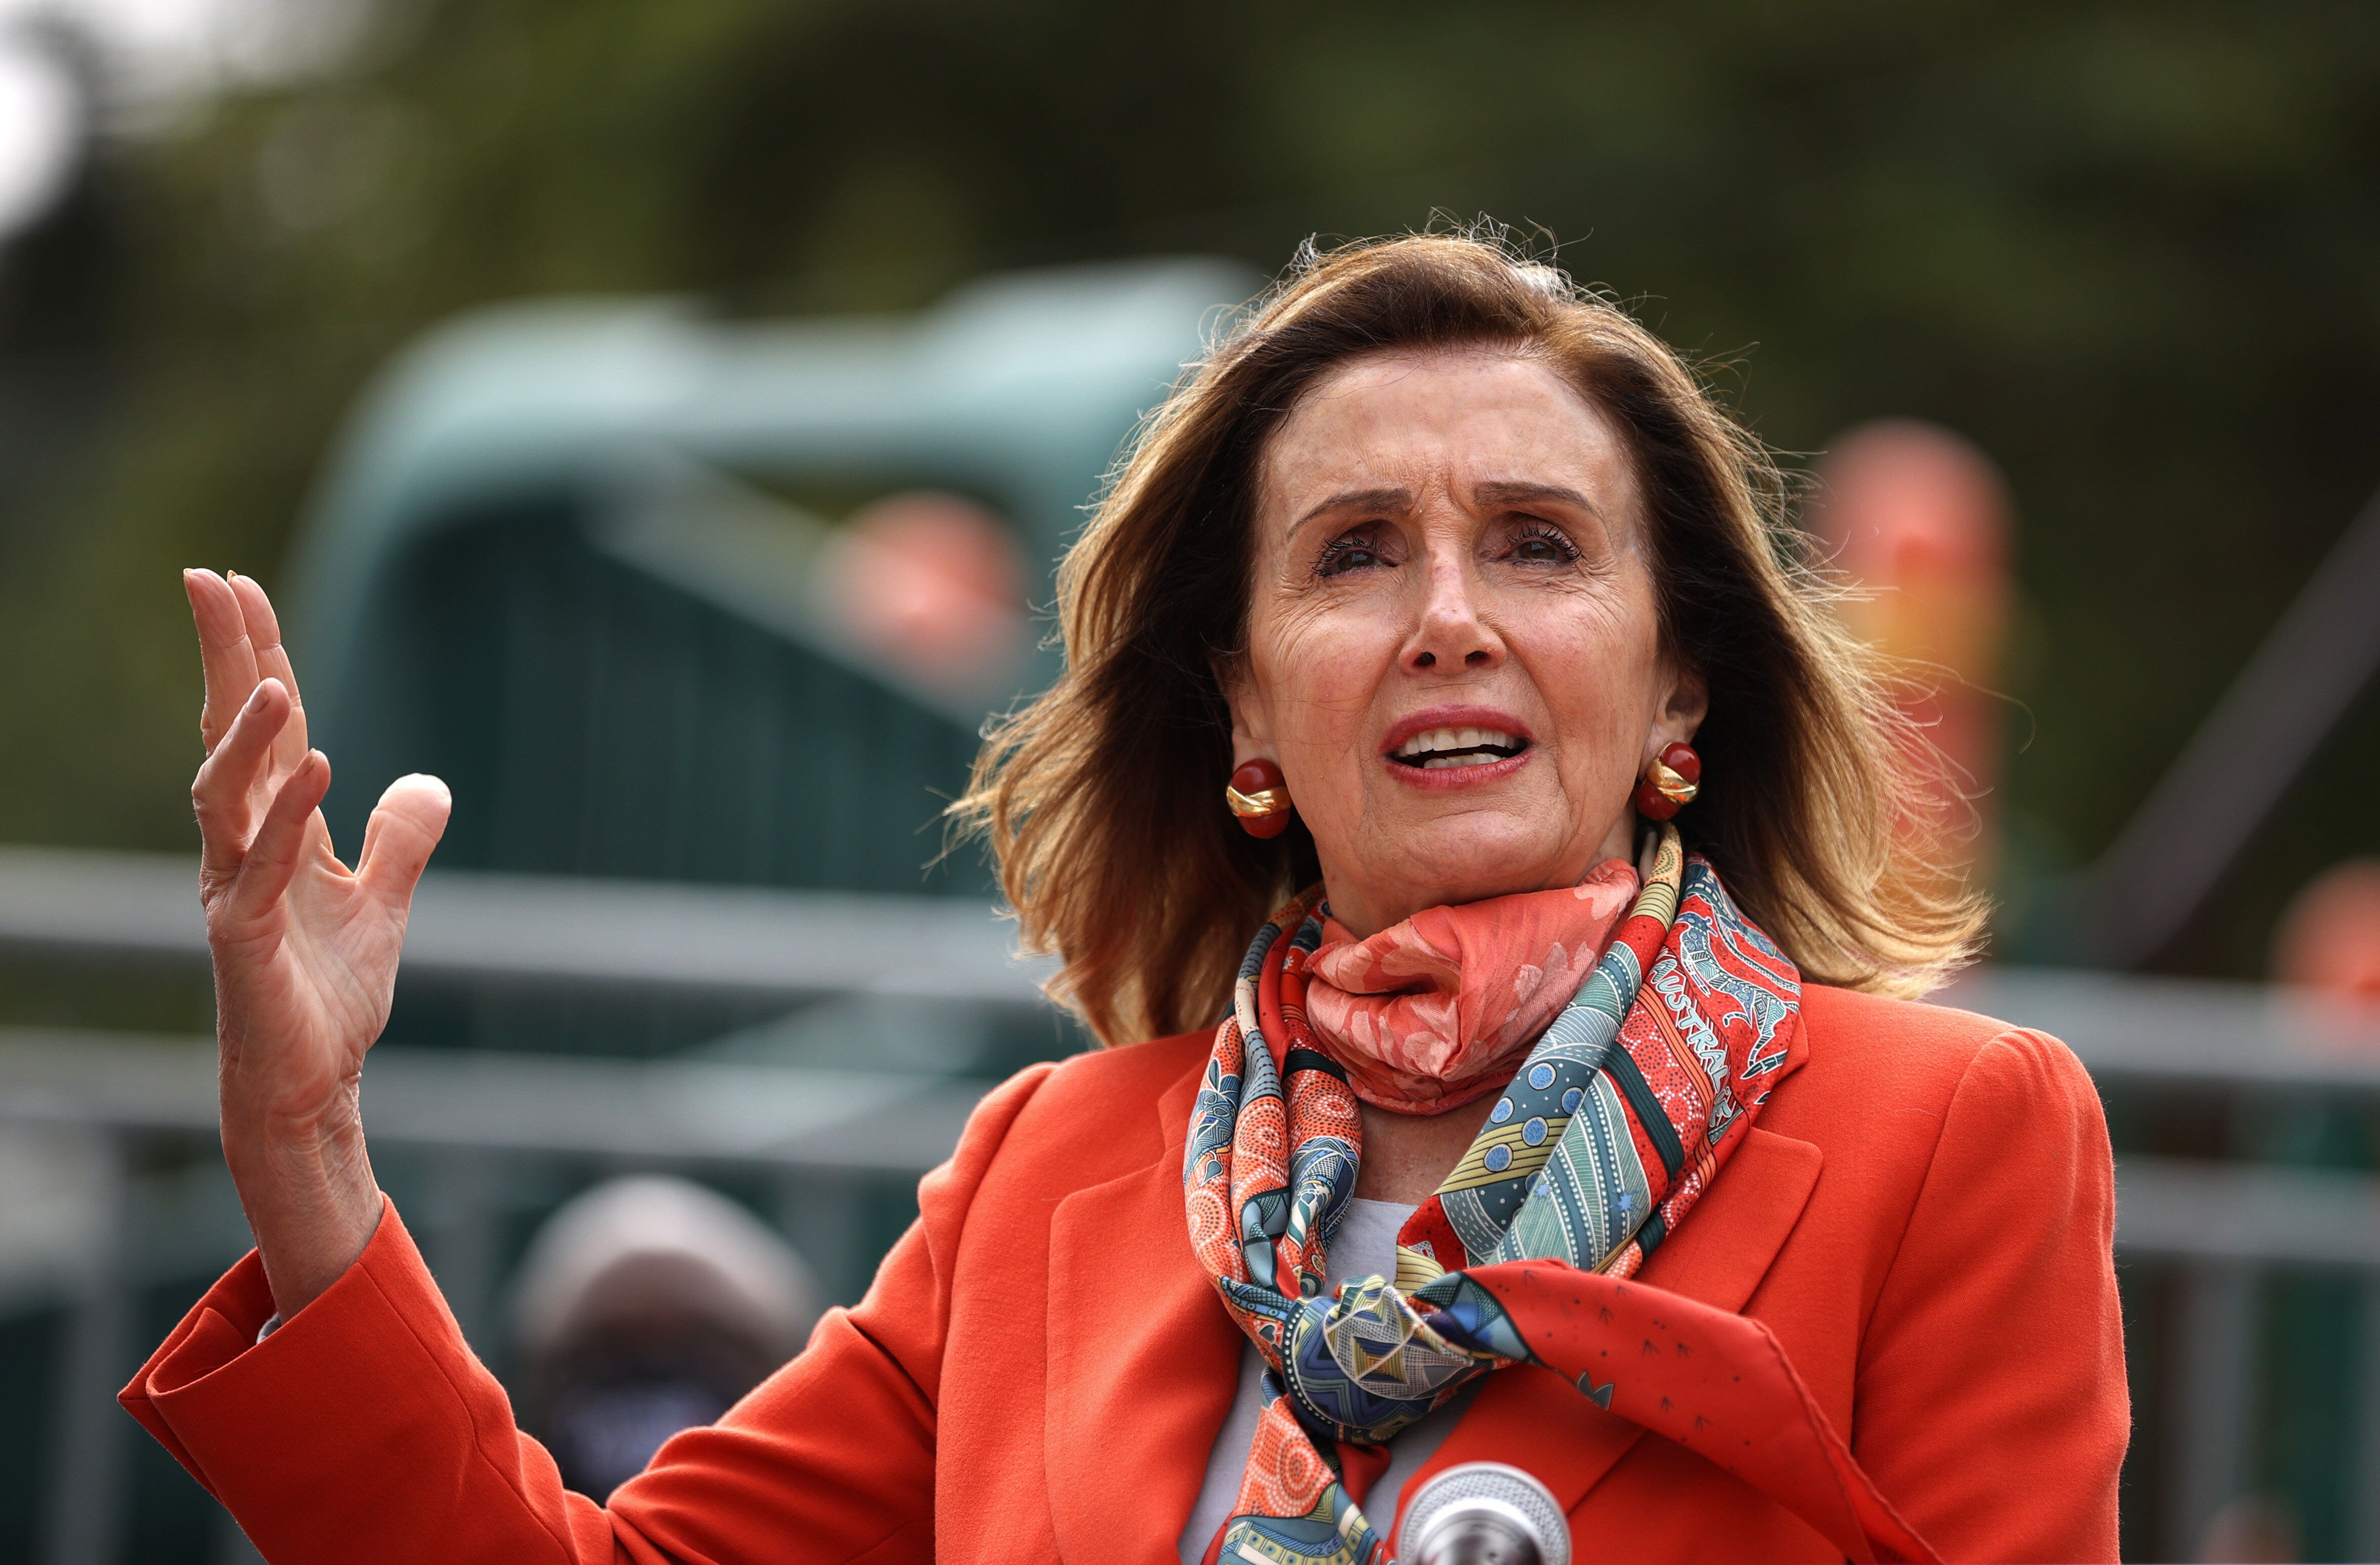 House Speaker Nancy Pelosi (D-Calif.) addressed the hair salon controversy during an event at a San Francisco school Wednesda